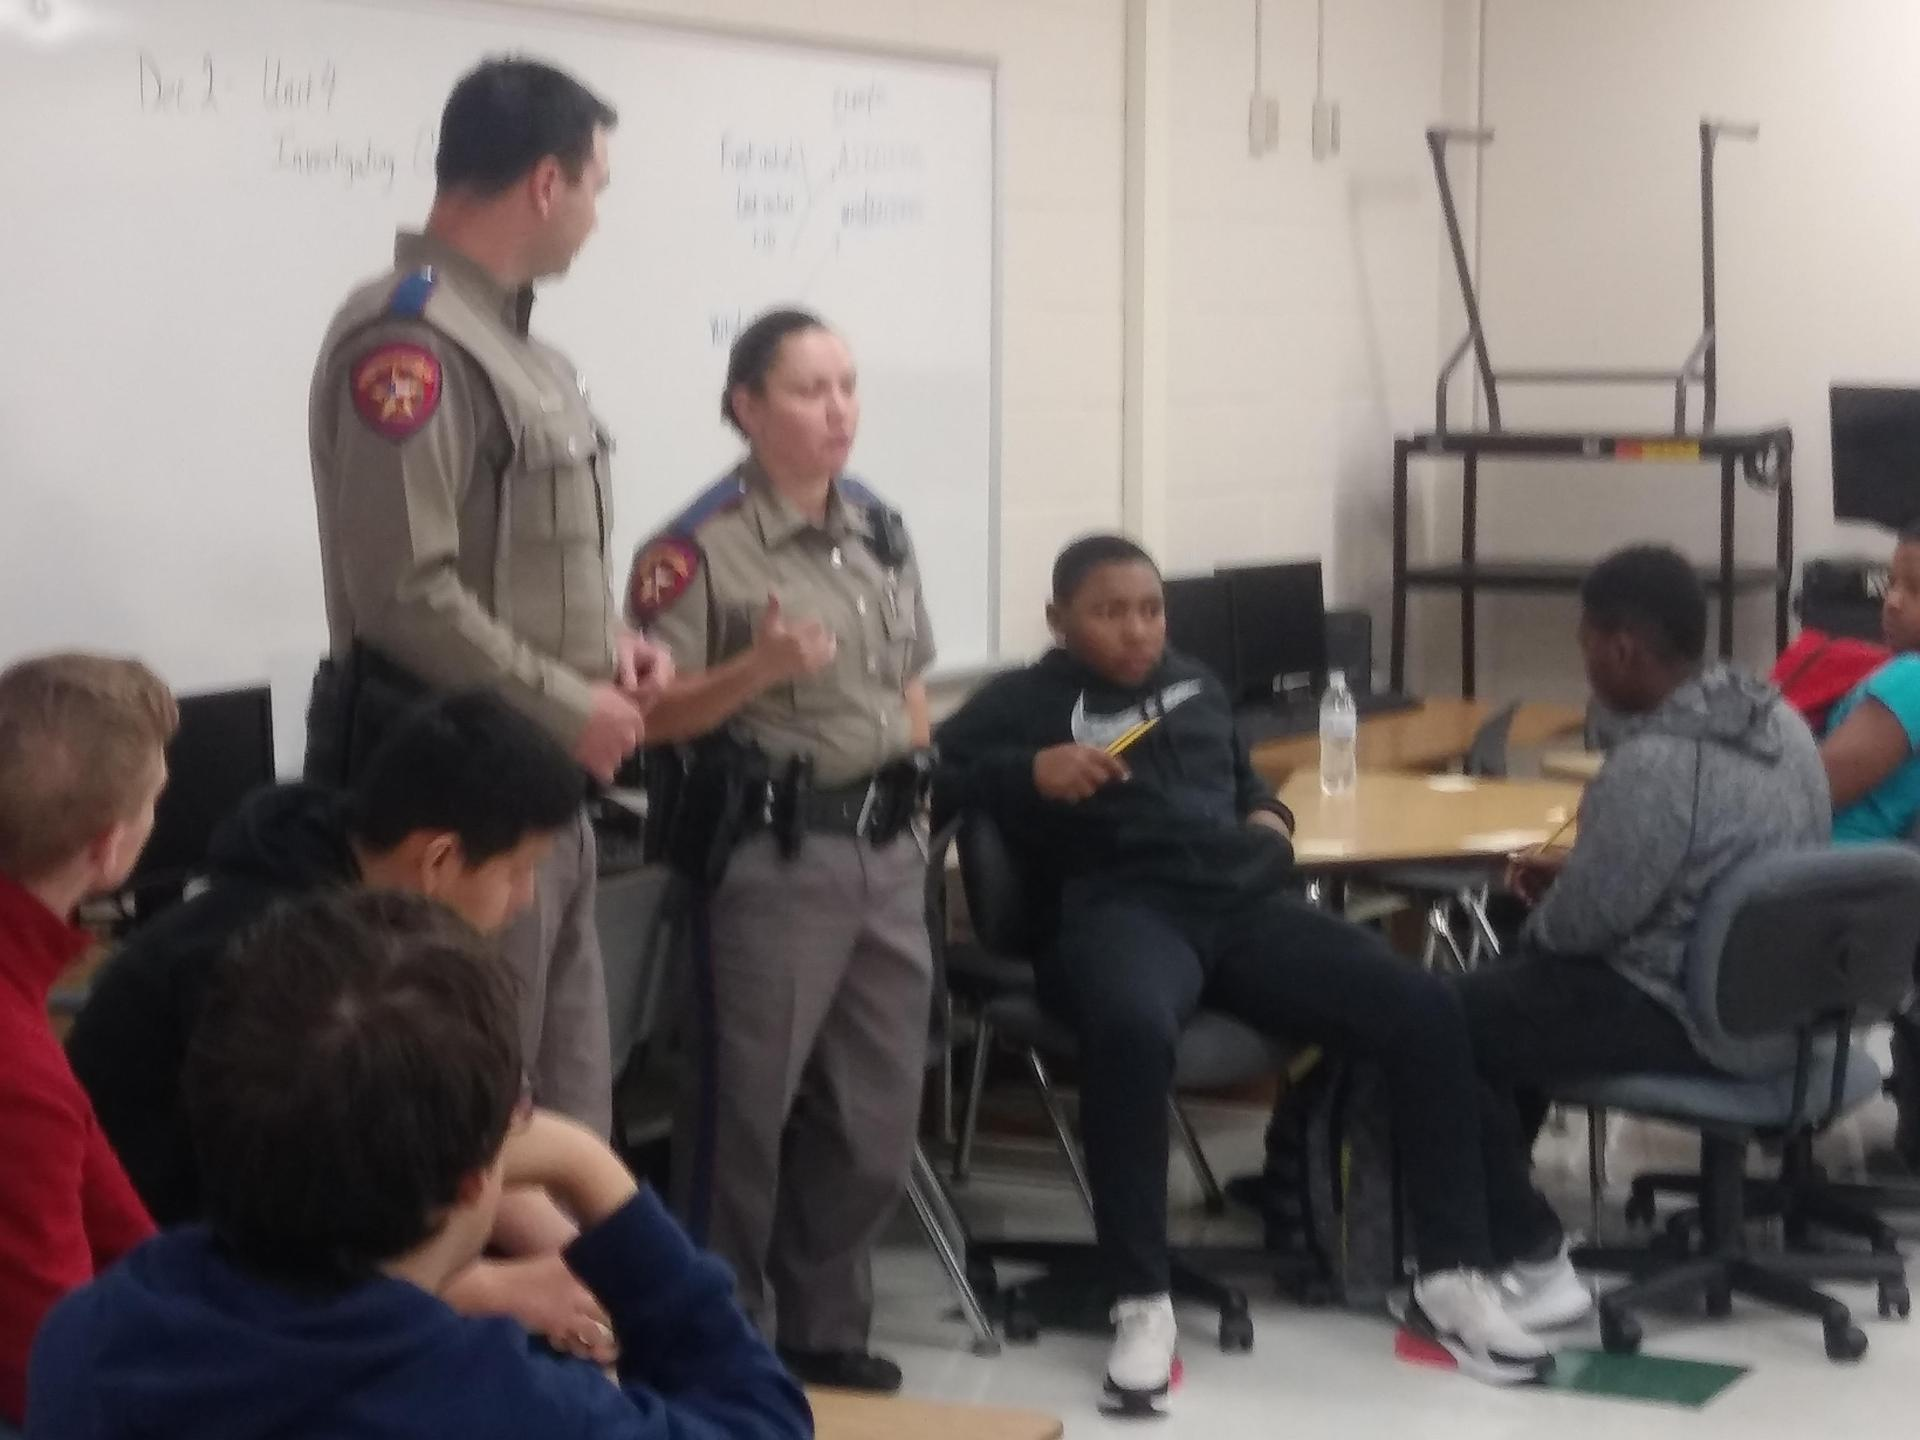 2 uniformed officers talking in front of class